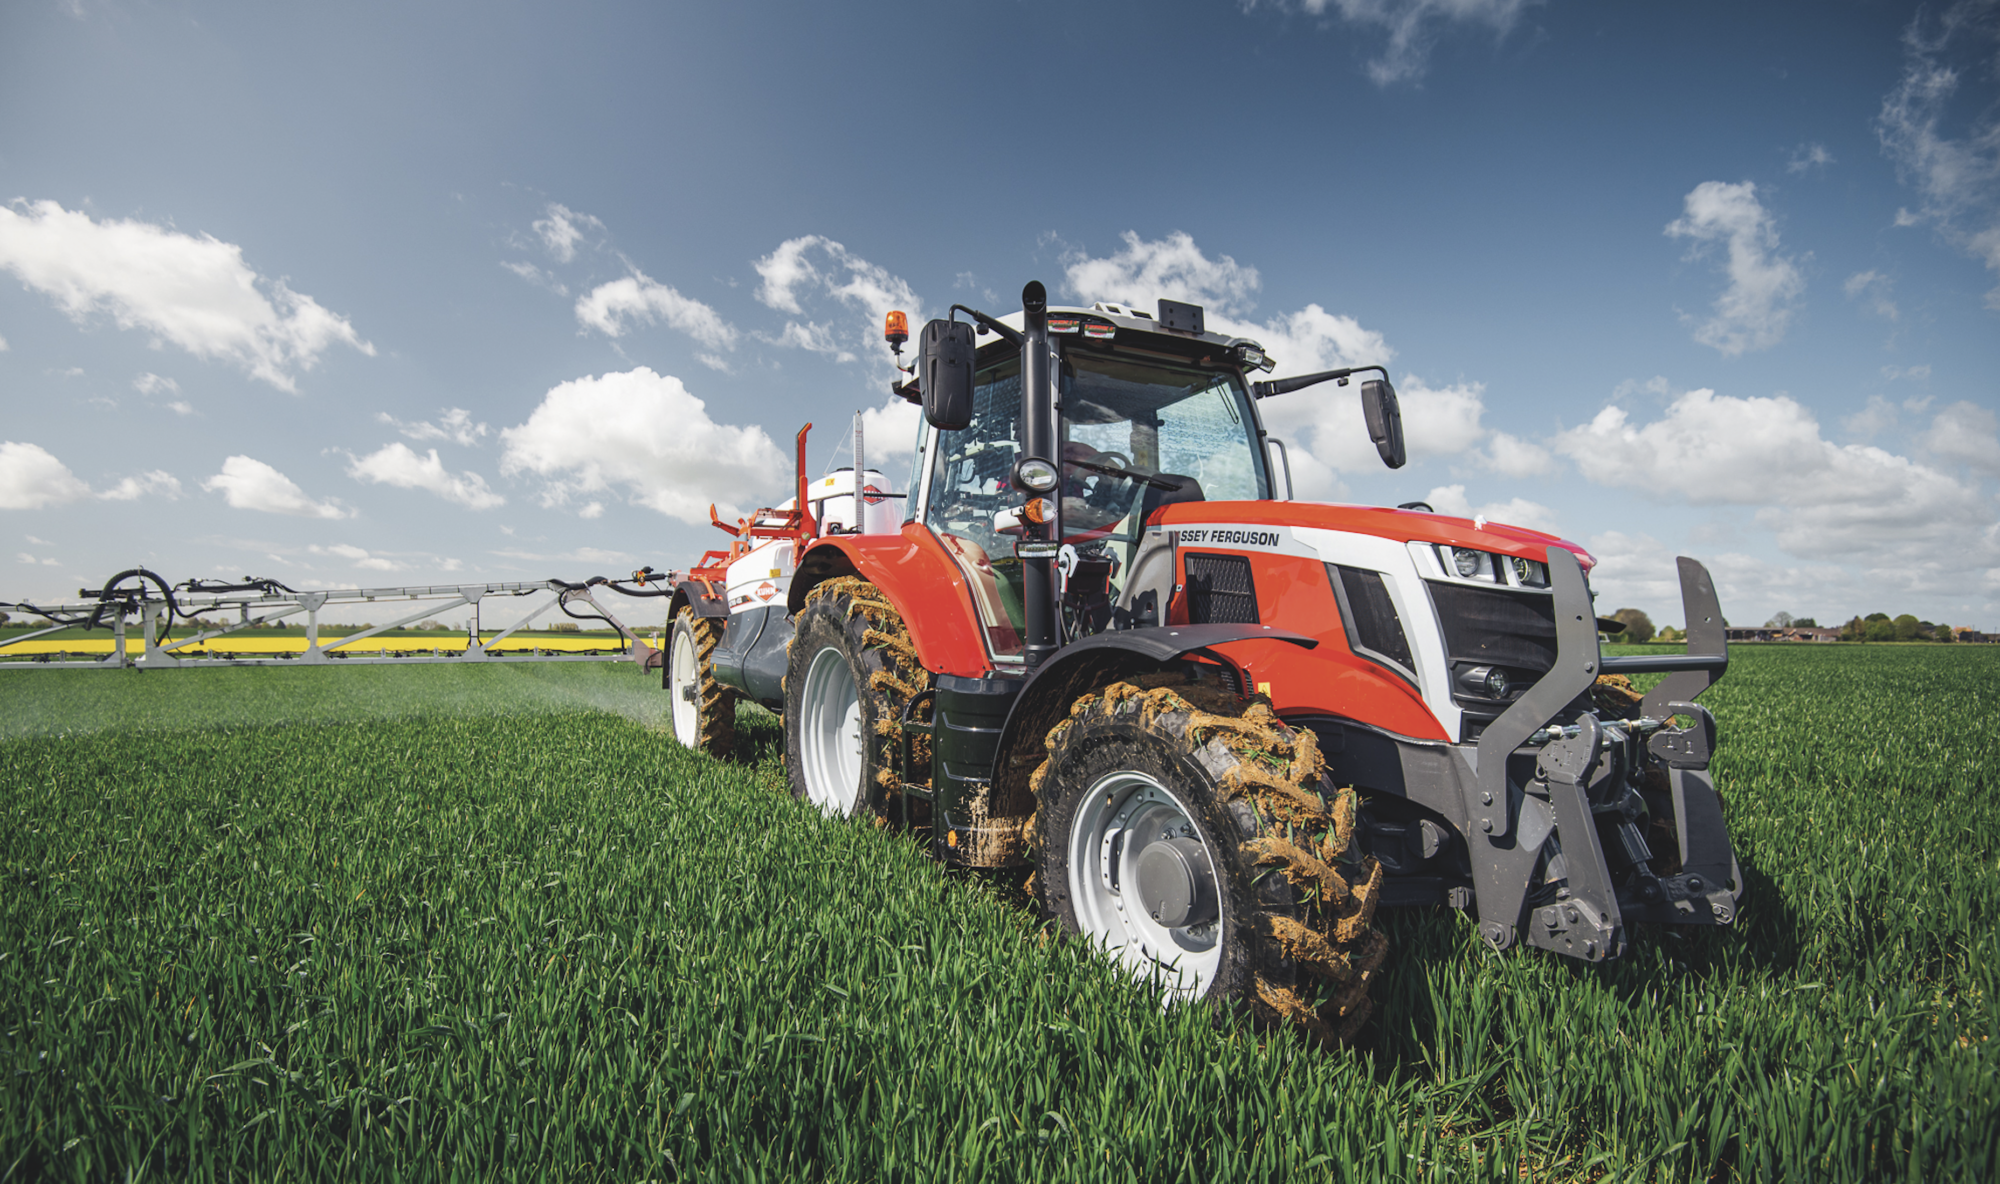 Born to Farm event brings new products and features